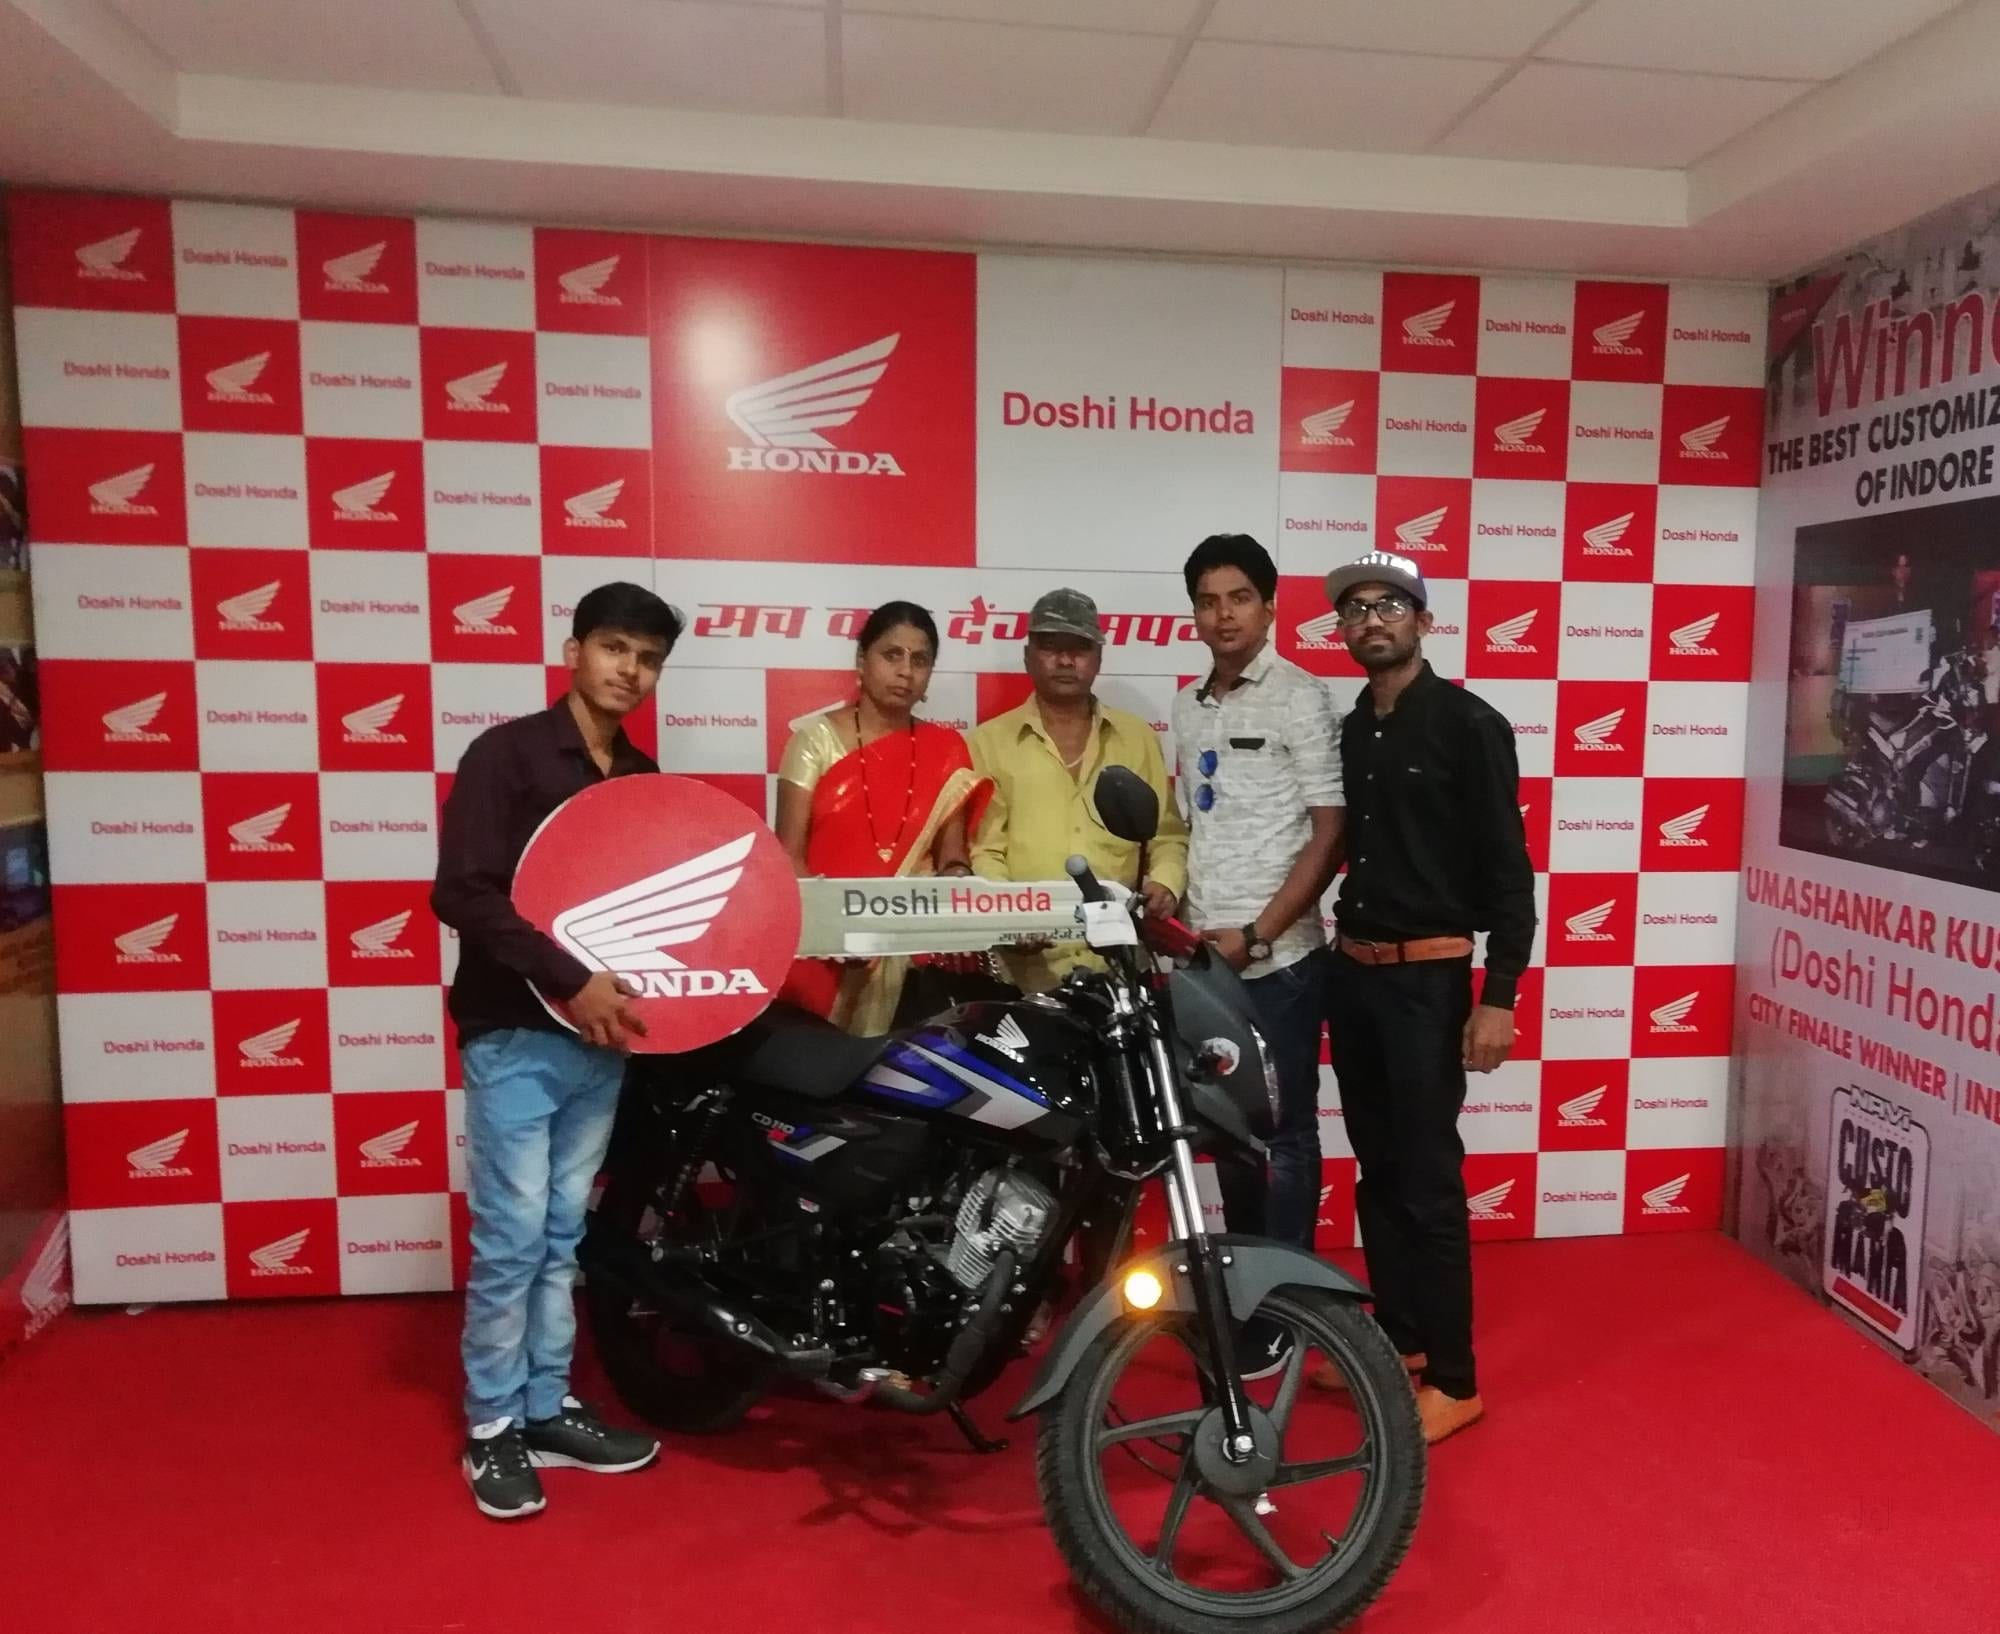 Top 10 Honda Bike Showrooms in Vijay Nagar - Authorised